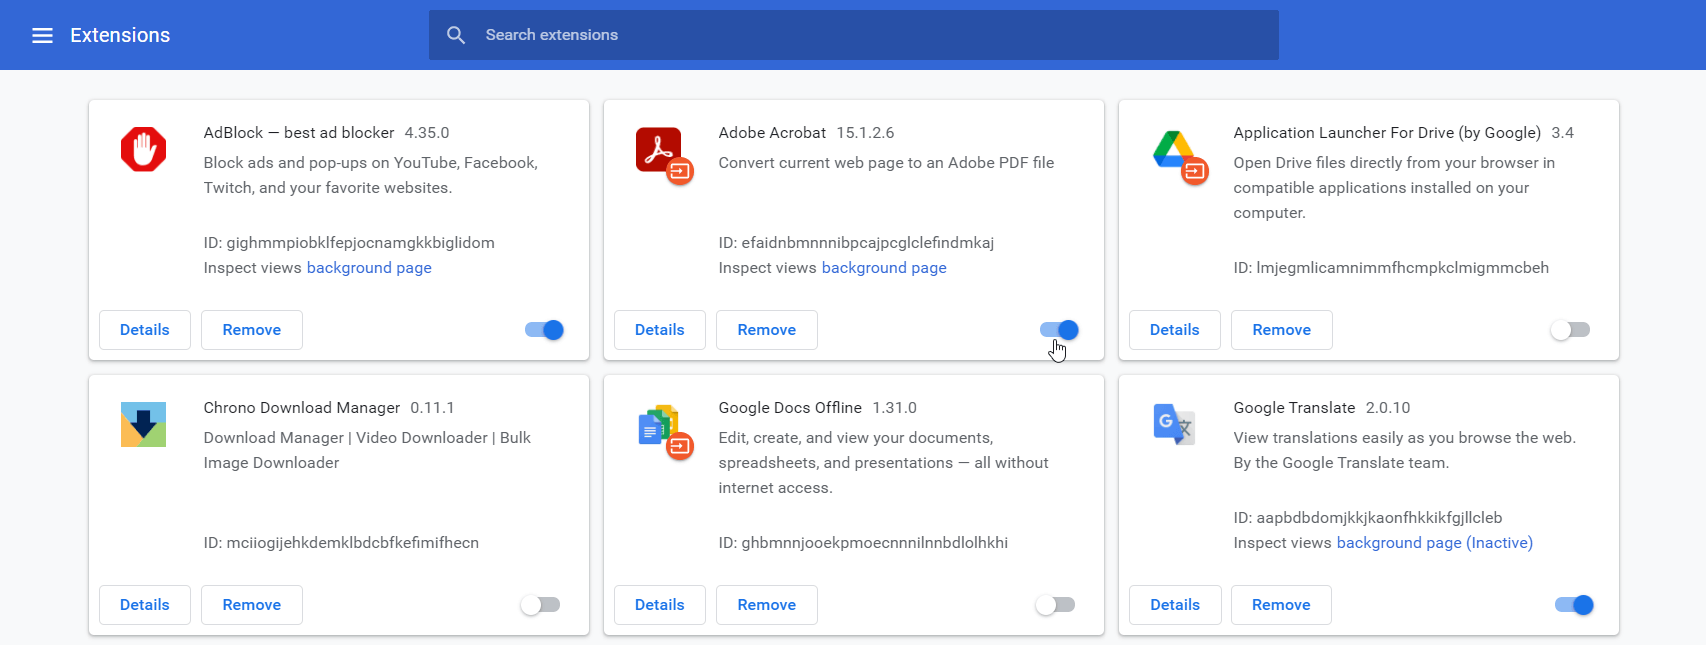 Why is Google Chrome so slow? Try disabling or removing extensions